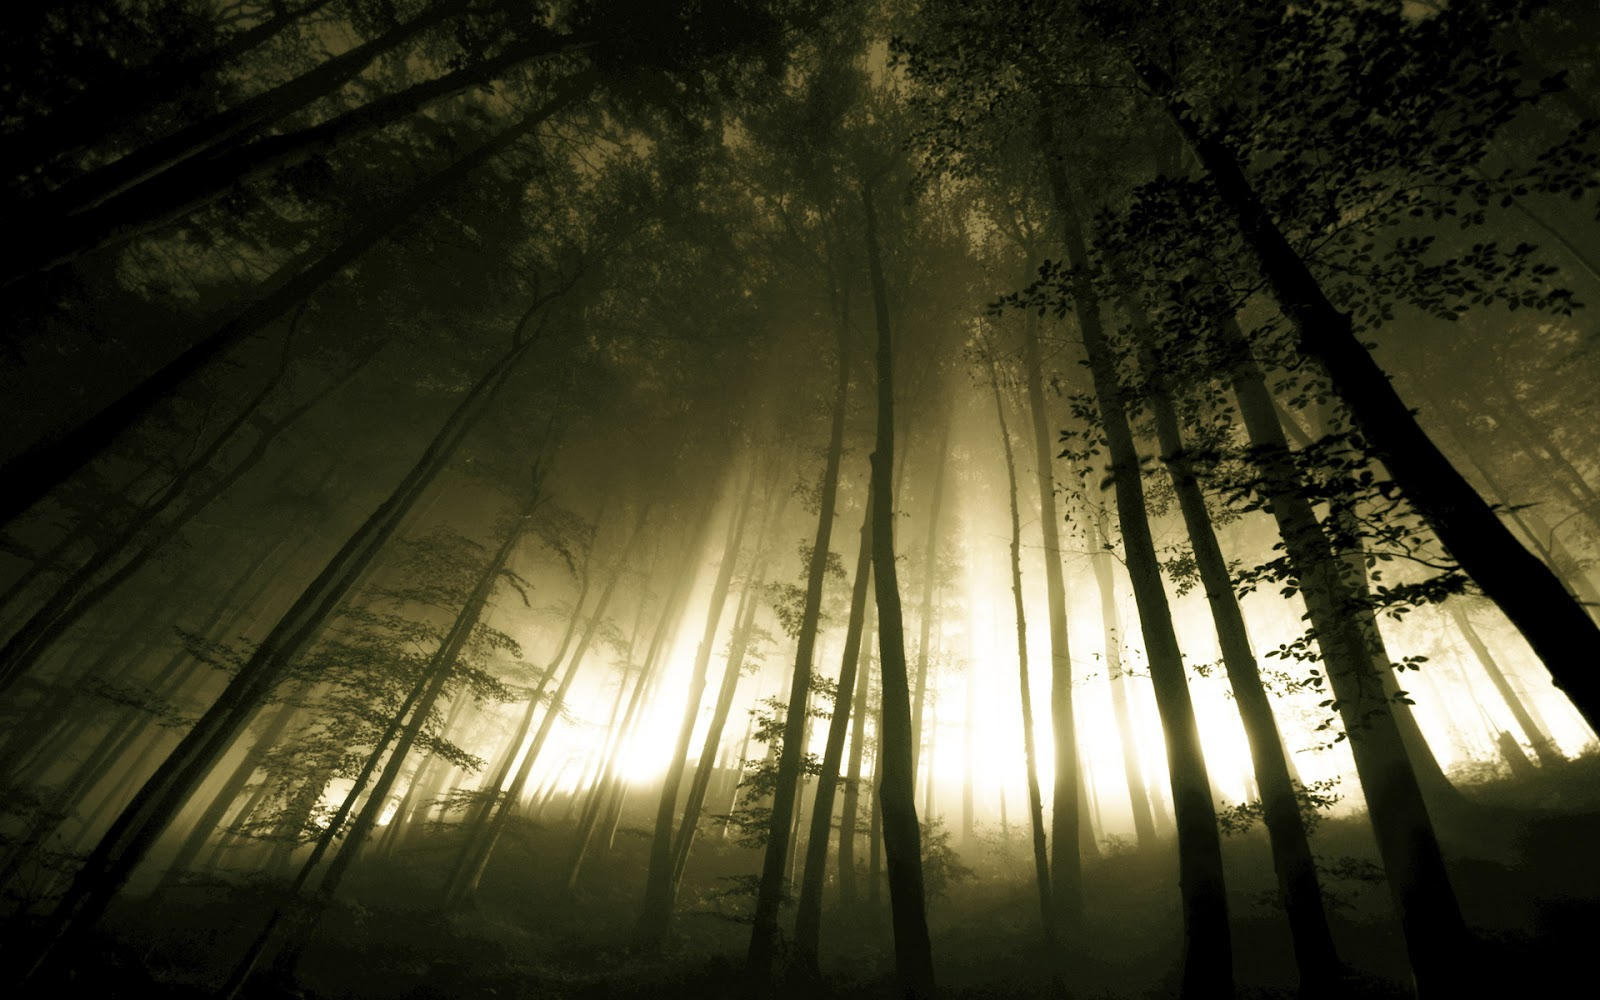 Dark Trees Hd Wallpapers: Dark Forest Fog Trees HD Wallpaper